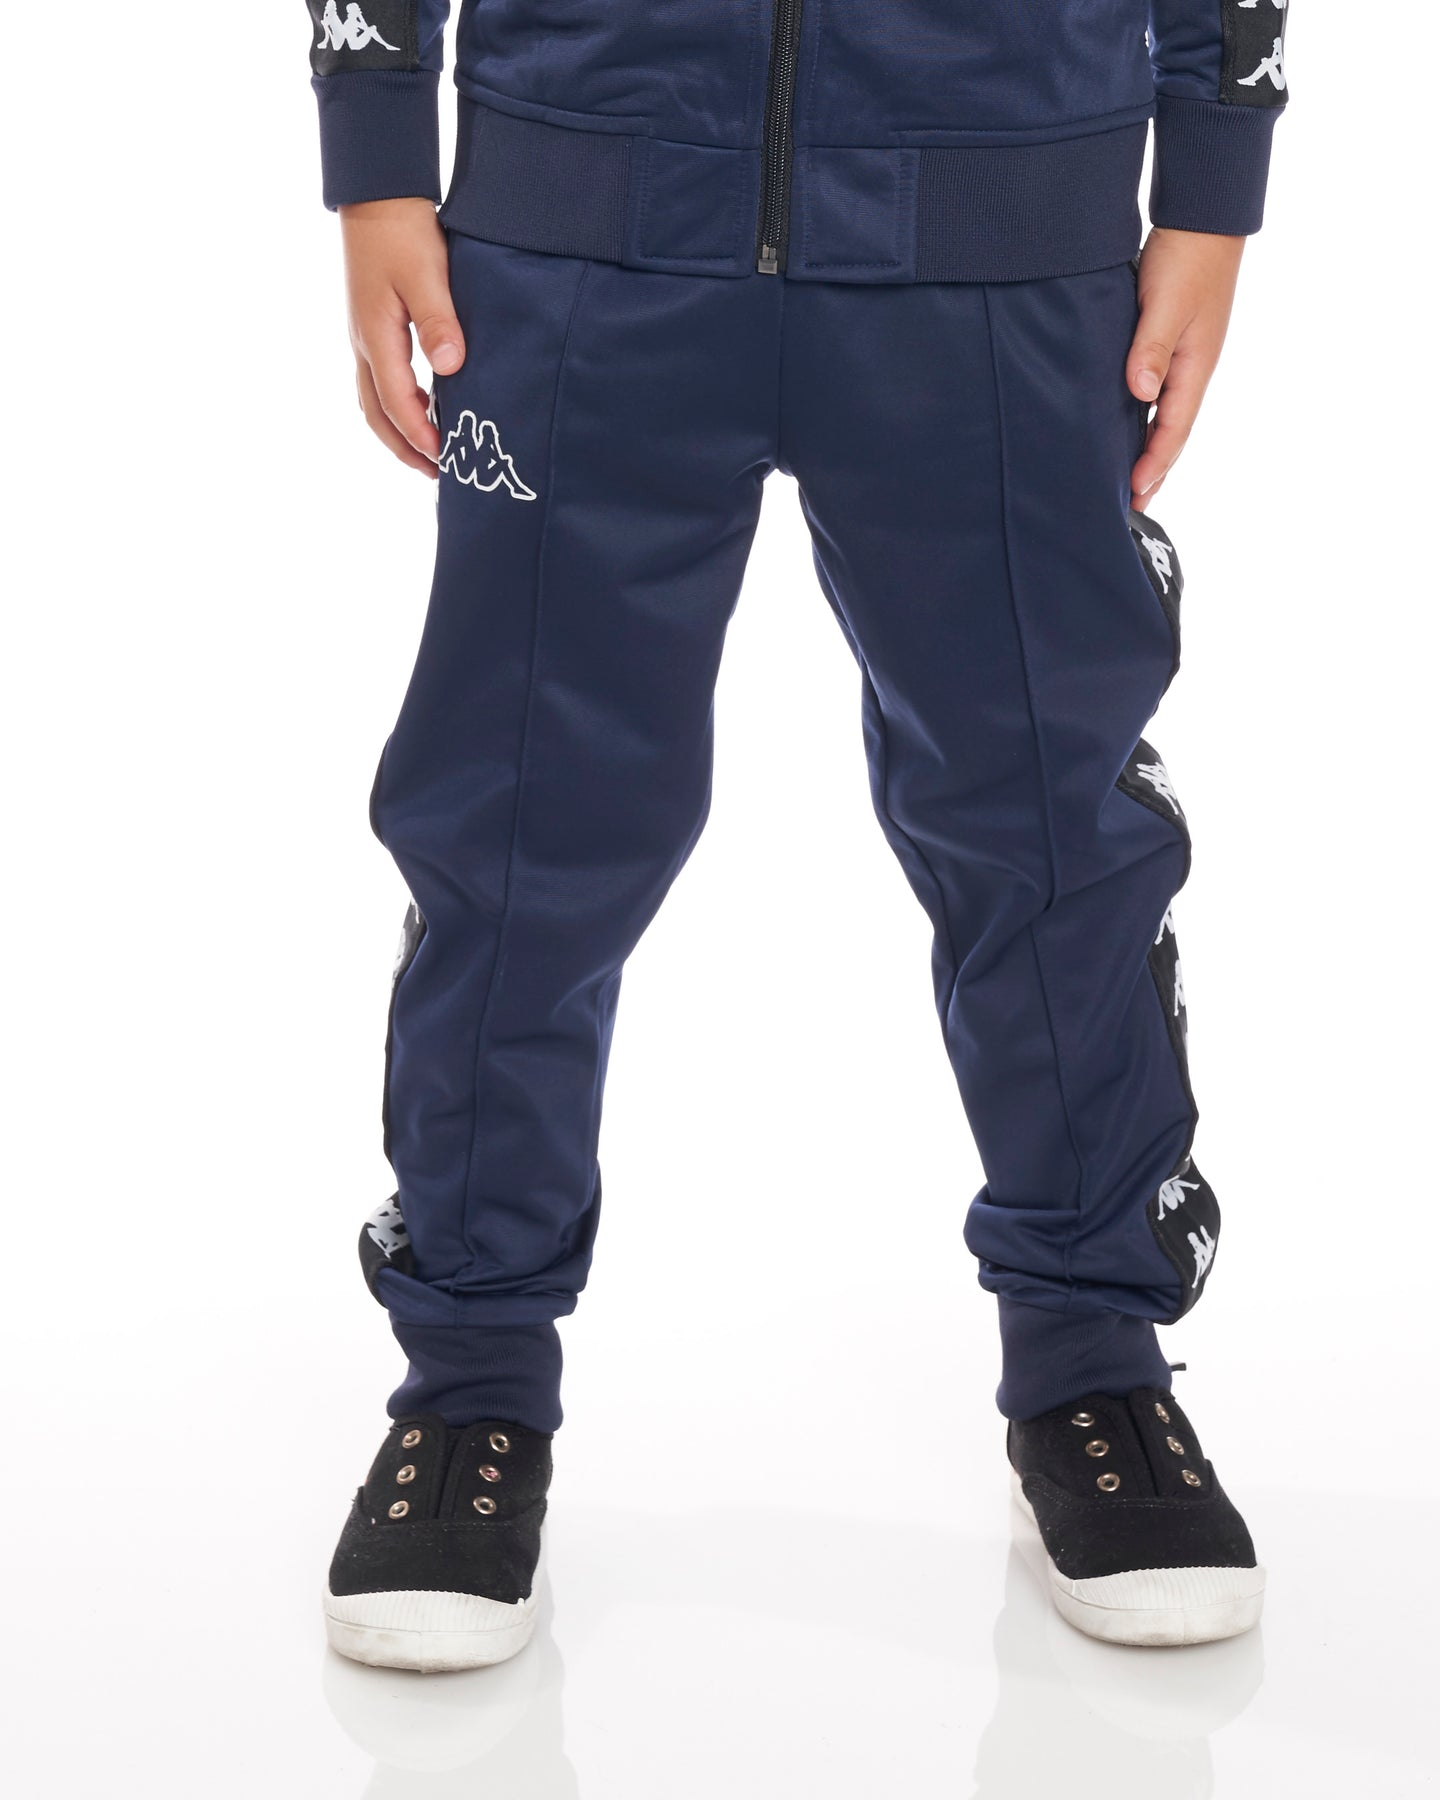 a1b52d8762 222 Banda Rastoriazz Trackpants